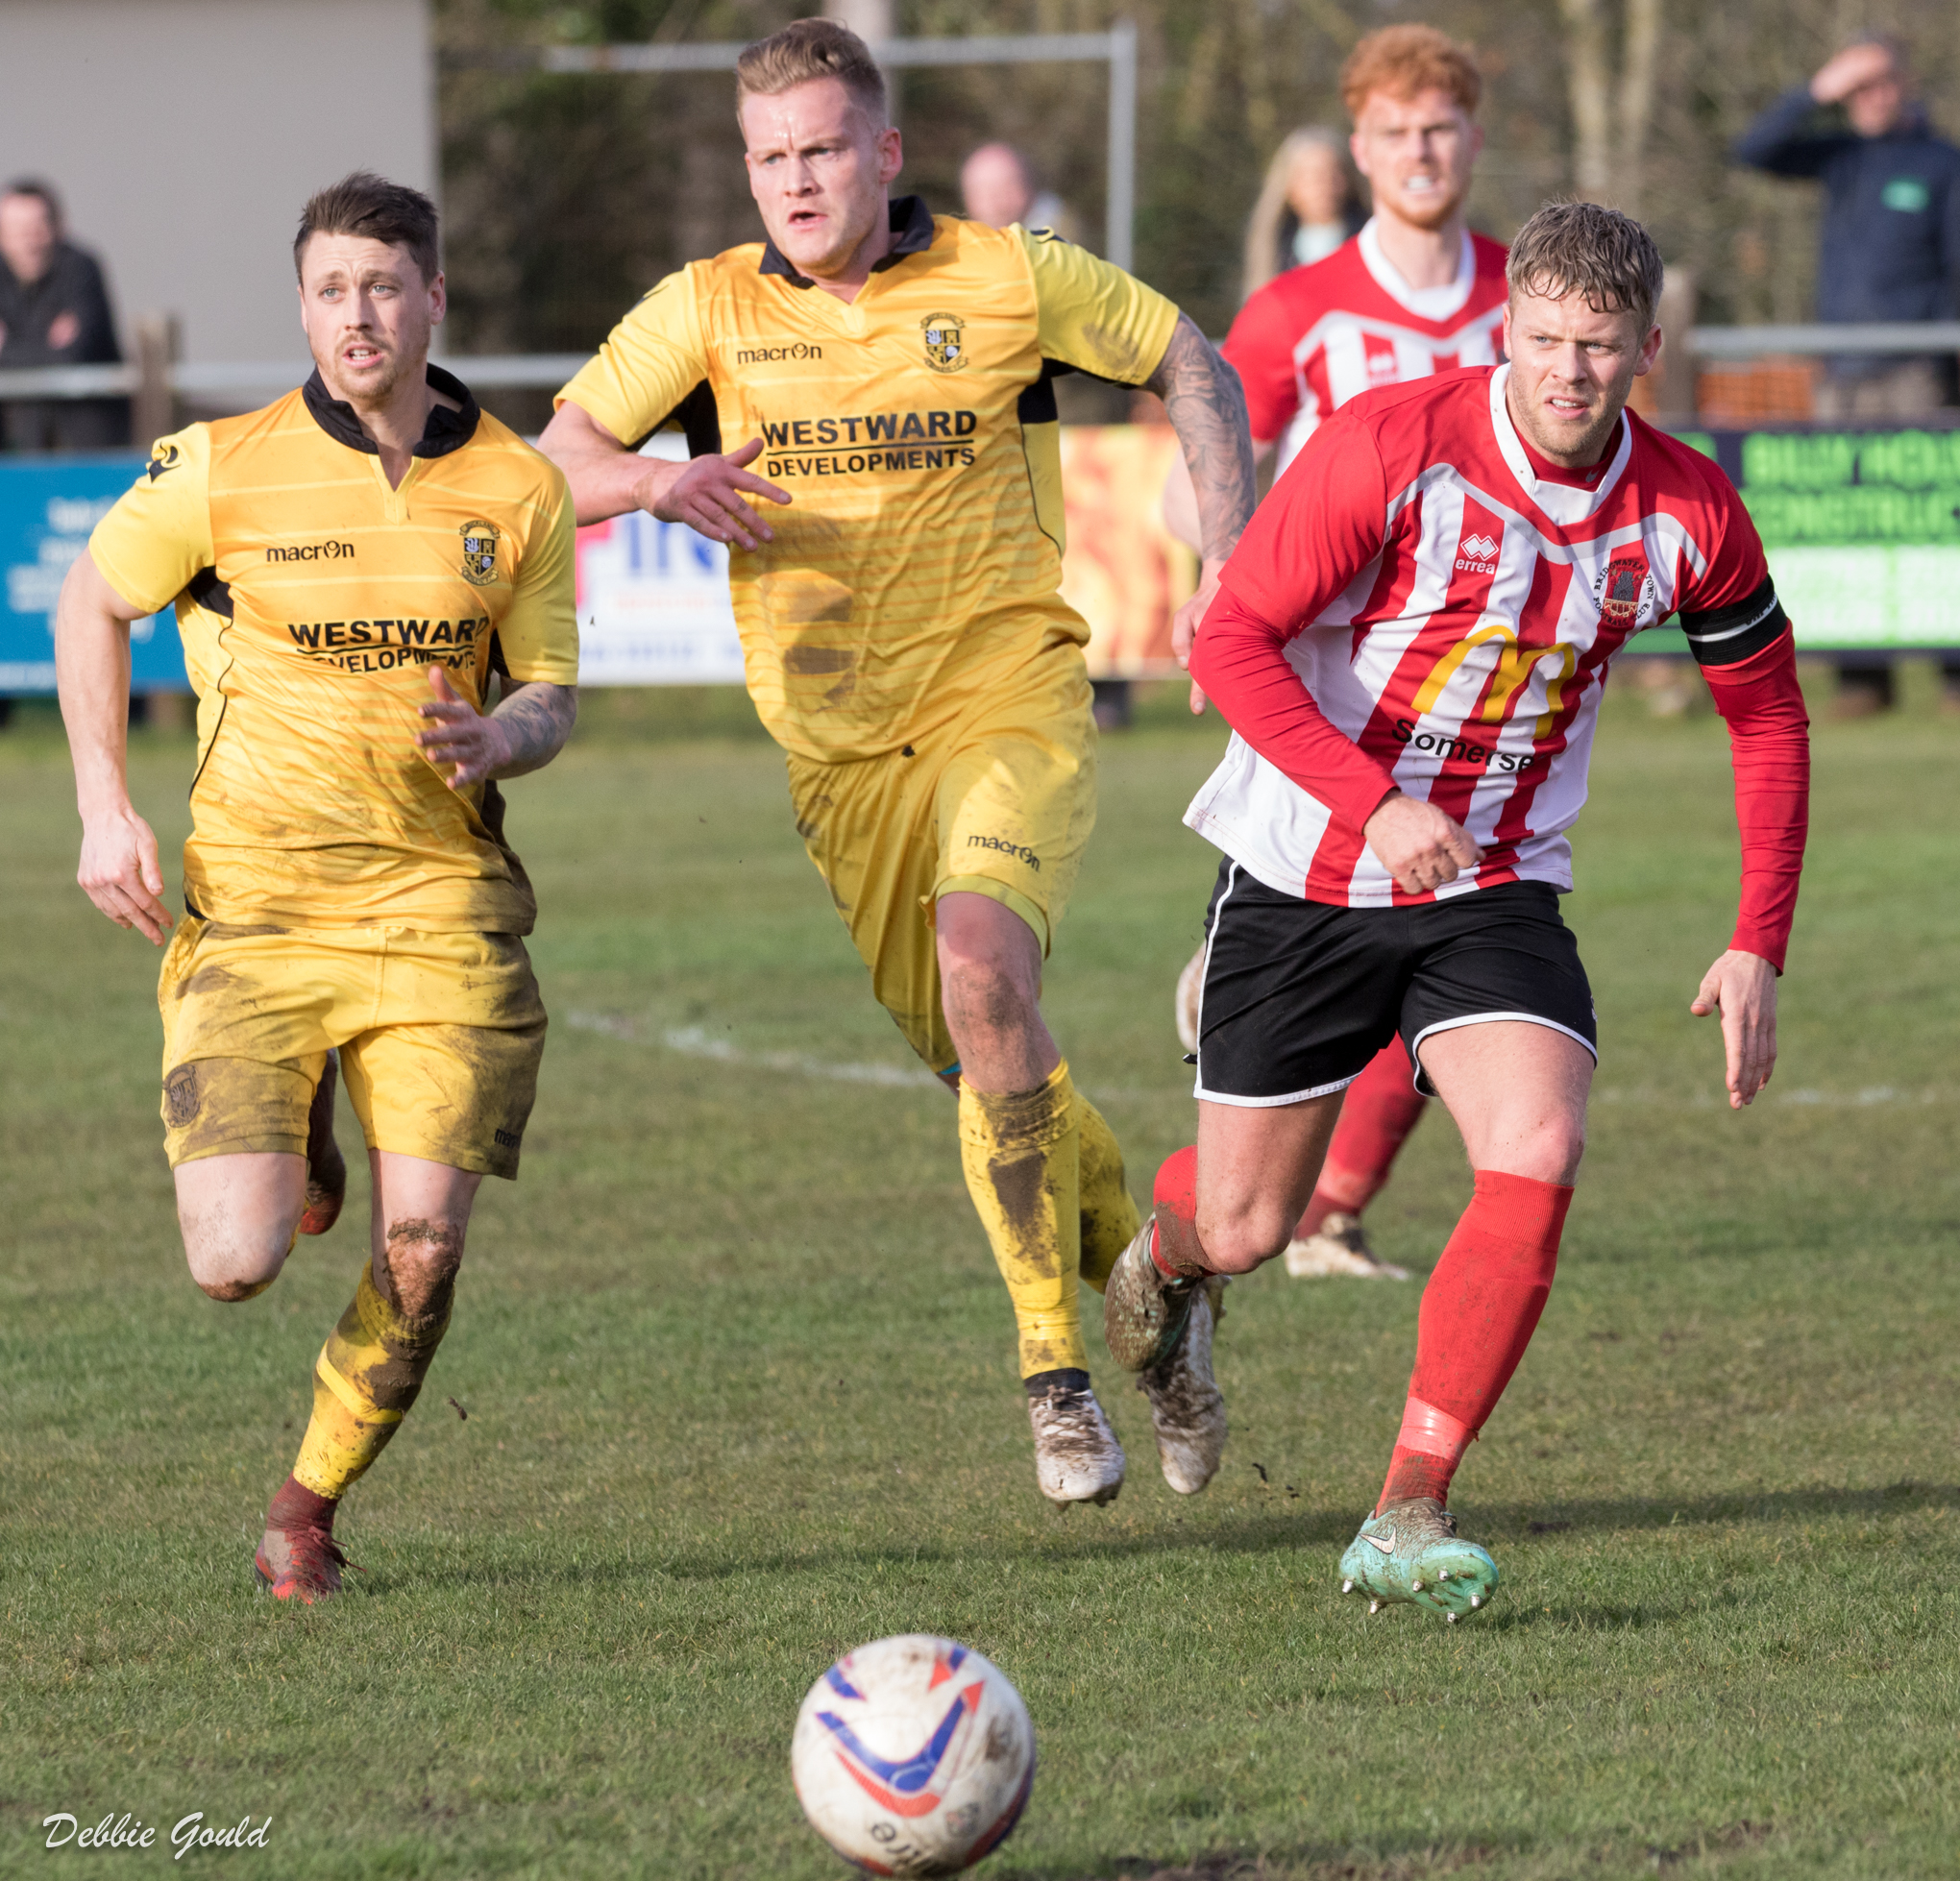 SKIPPER: Bridgwater Town captain Kurt Robinson in action at Buckland Athletic on Saturday. Pic: Debbie Gould